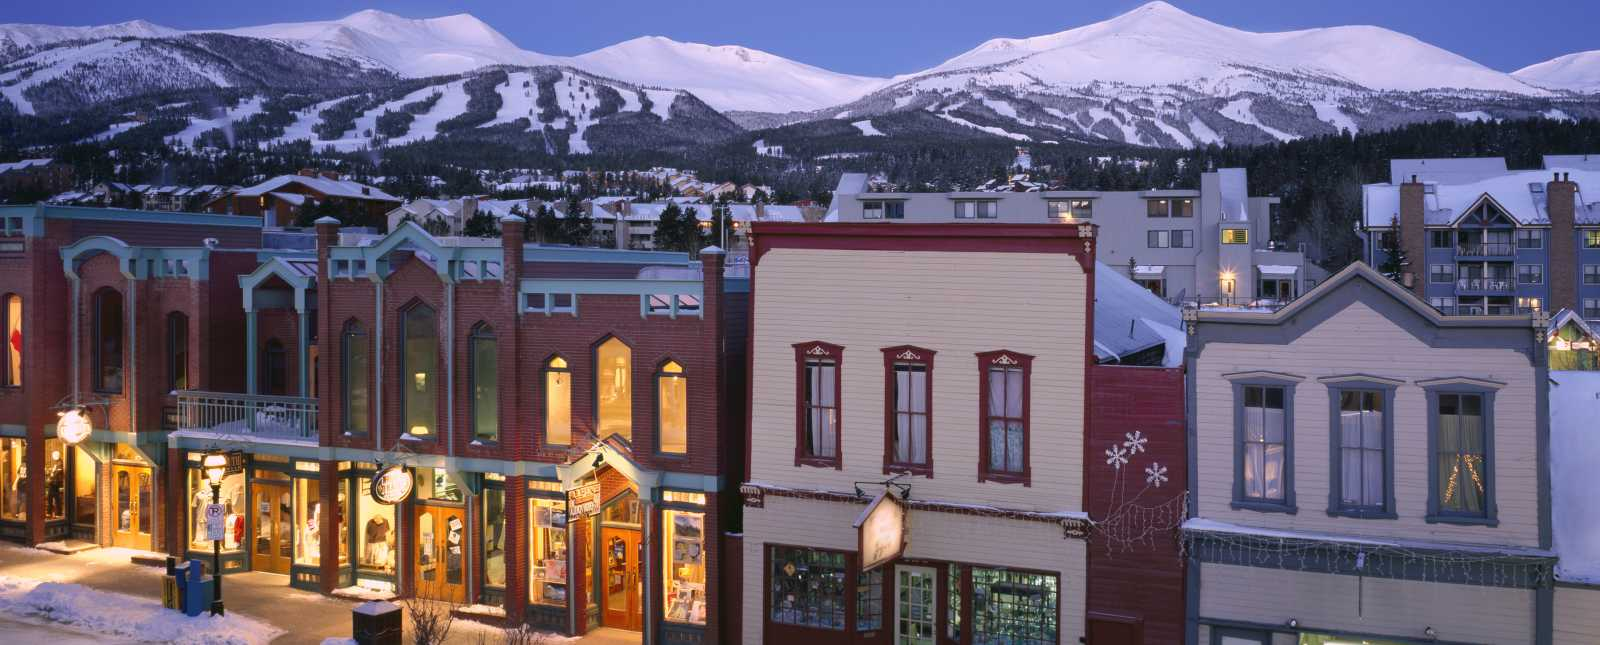 breckenridge-downtown-shopping-mountains